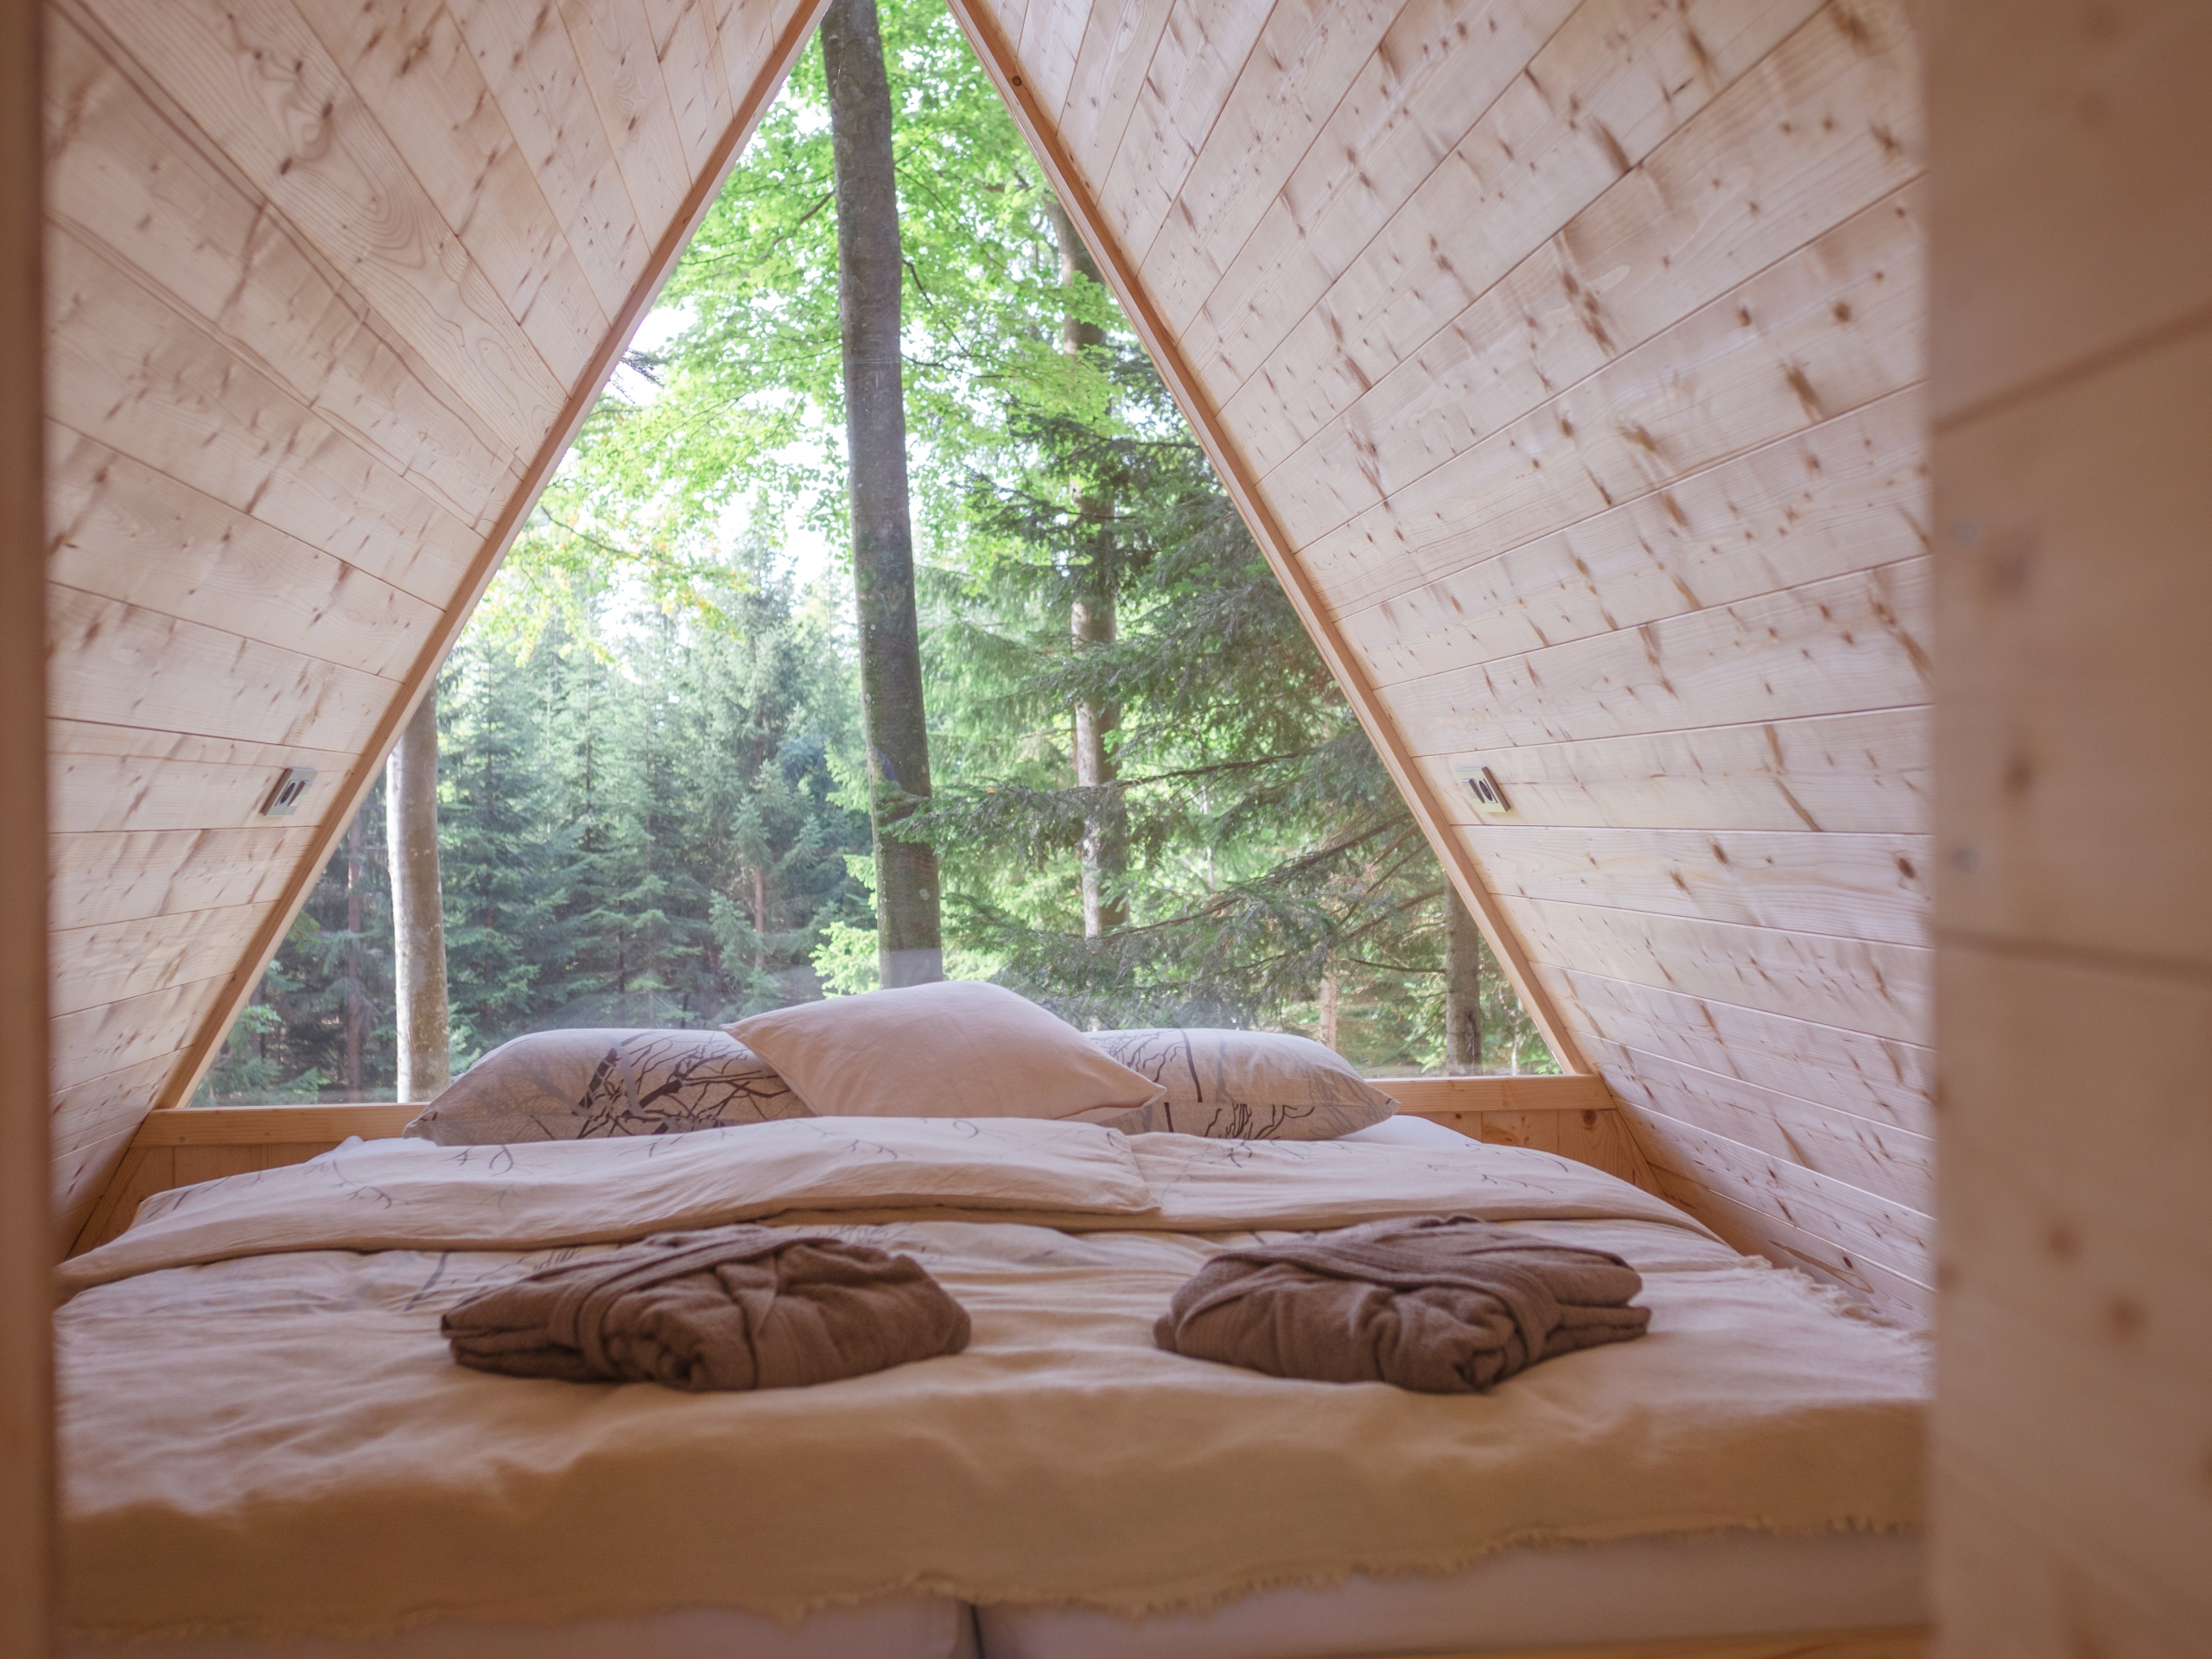 The Woods of Sinic glamping